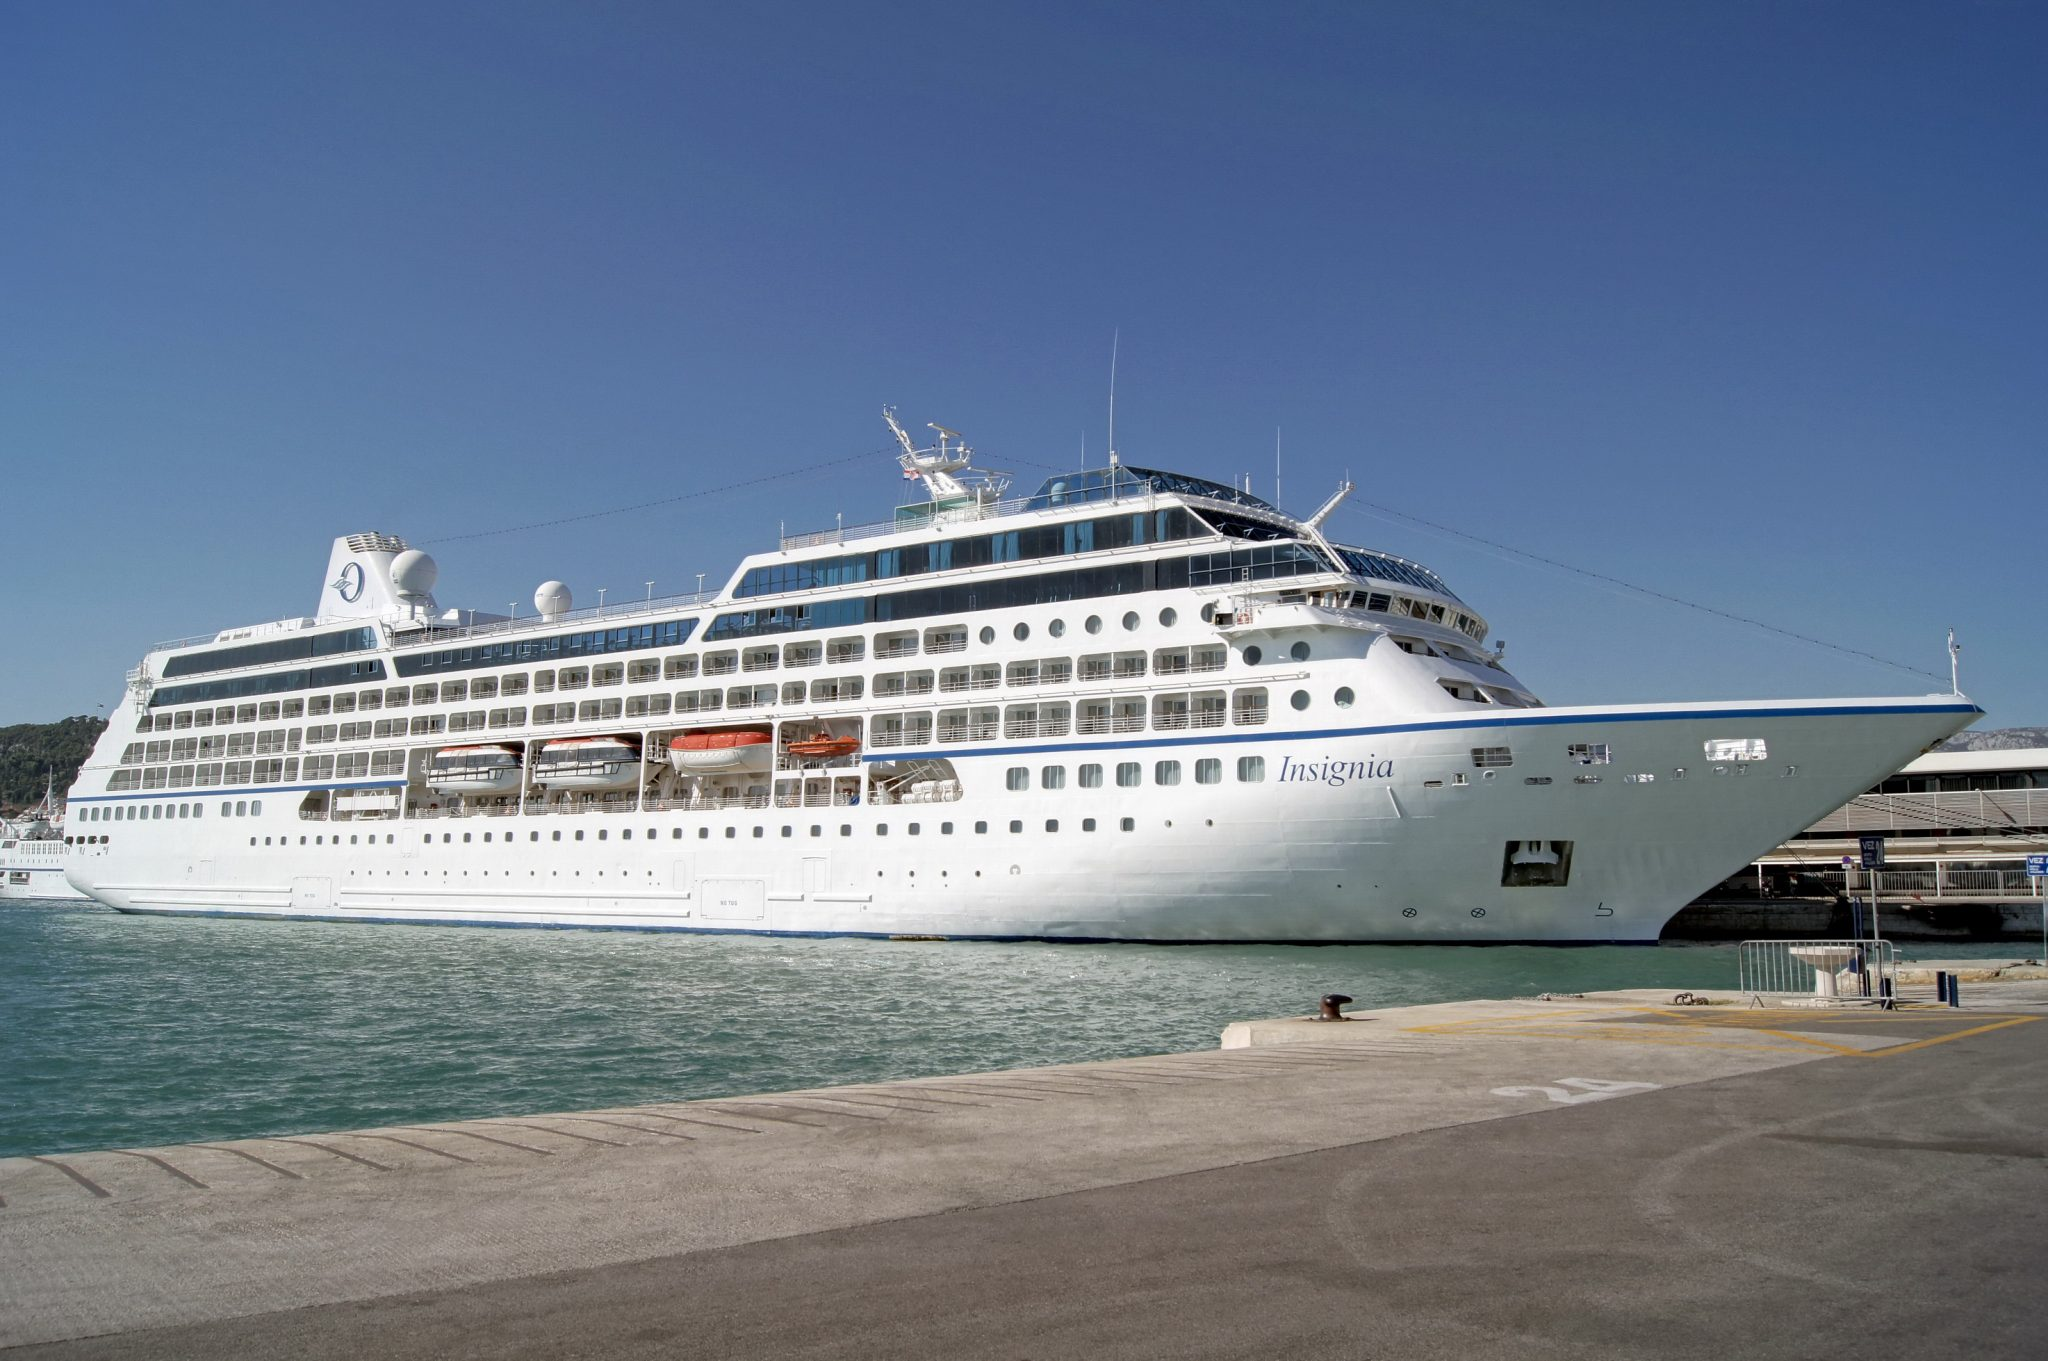 Insignia Cruise Ship arrives at Cobh Cruise Terminal - Ring of Cork